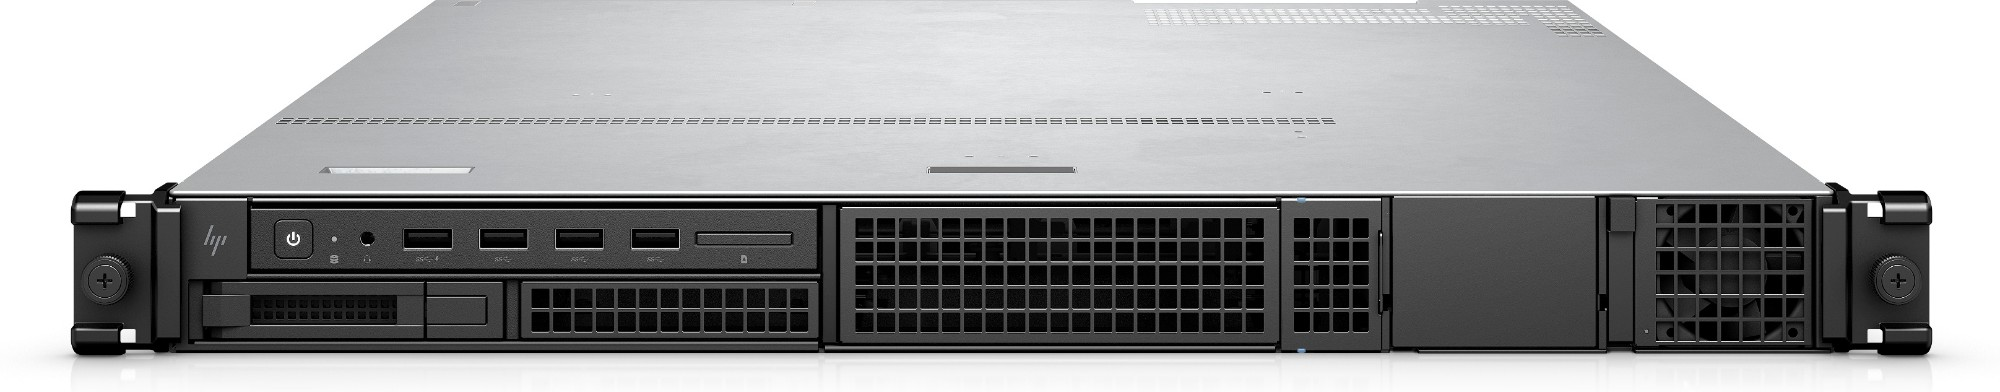 HP ZCentral 4R DDR4-SDRAM W-2223 Rack-mounted chassis Intel Xeon W 32 GB 512 GB SSD Windows 10 Pro for Workstations Workstation Black